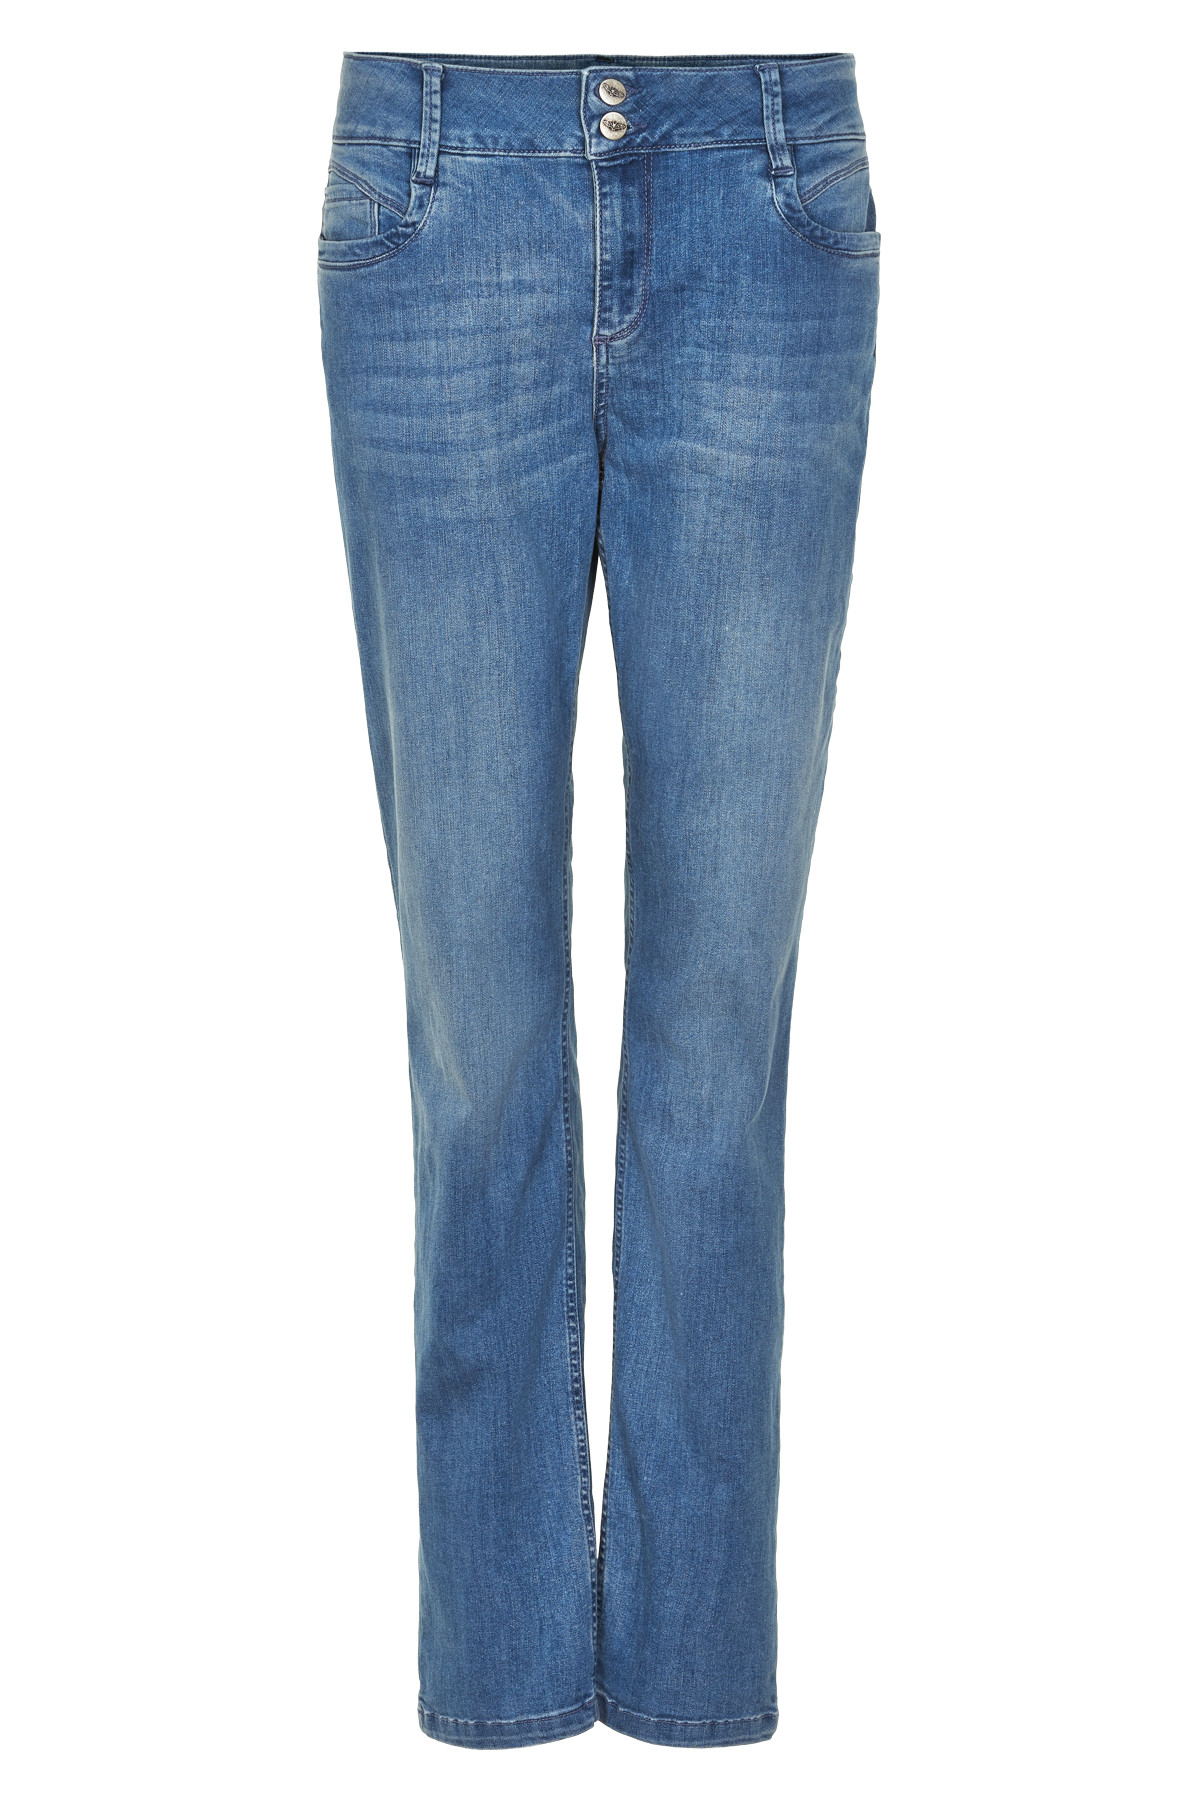 "Image of   Denim Hunter REGITZE CURVED JEANS 10701678 BW (Blue Wash 38510, ""32"", 25)"